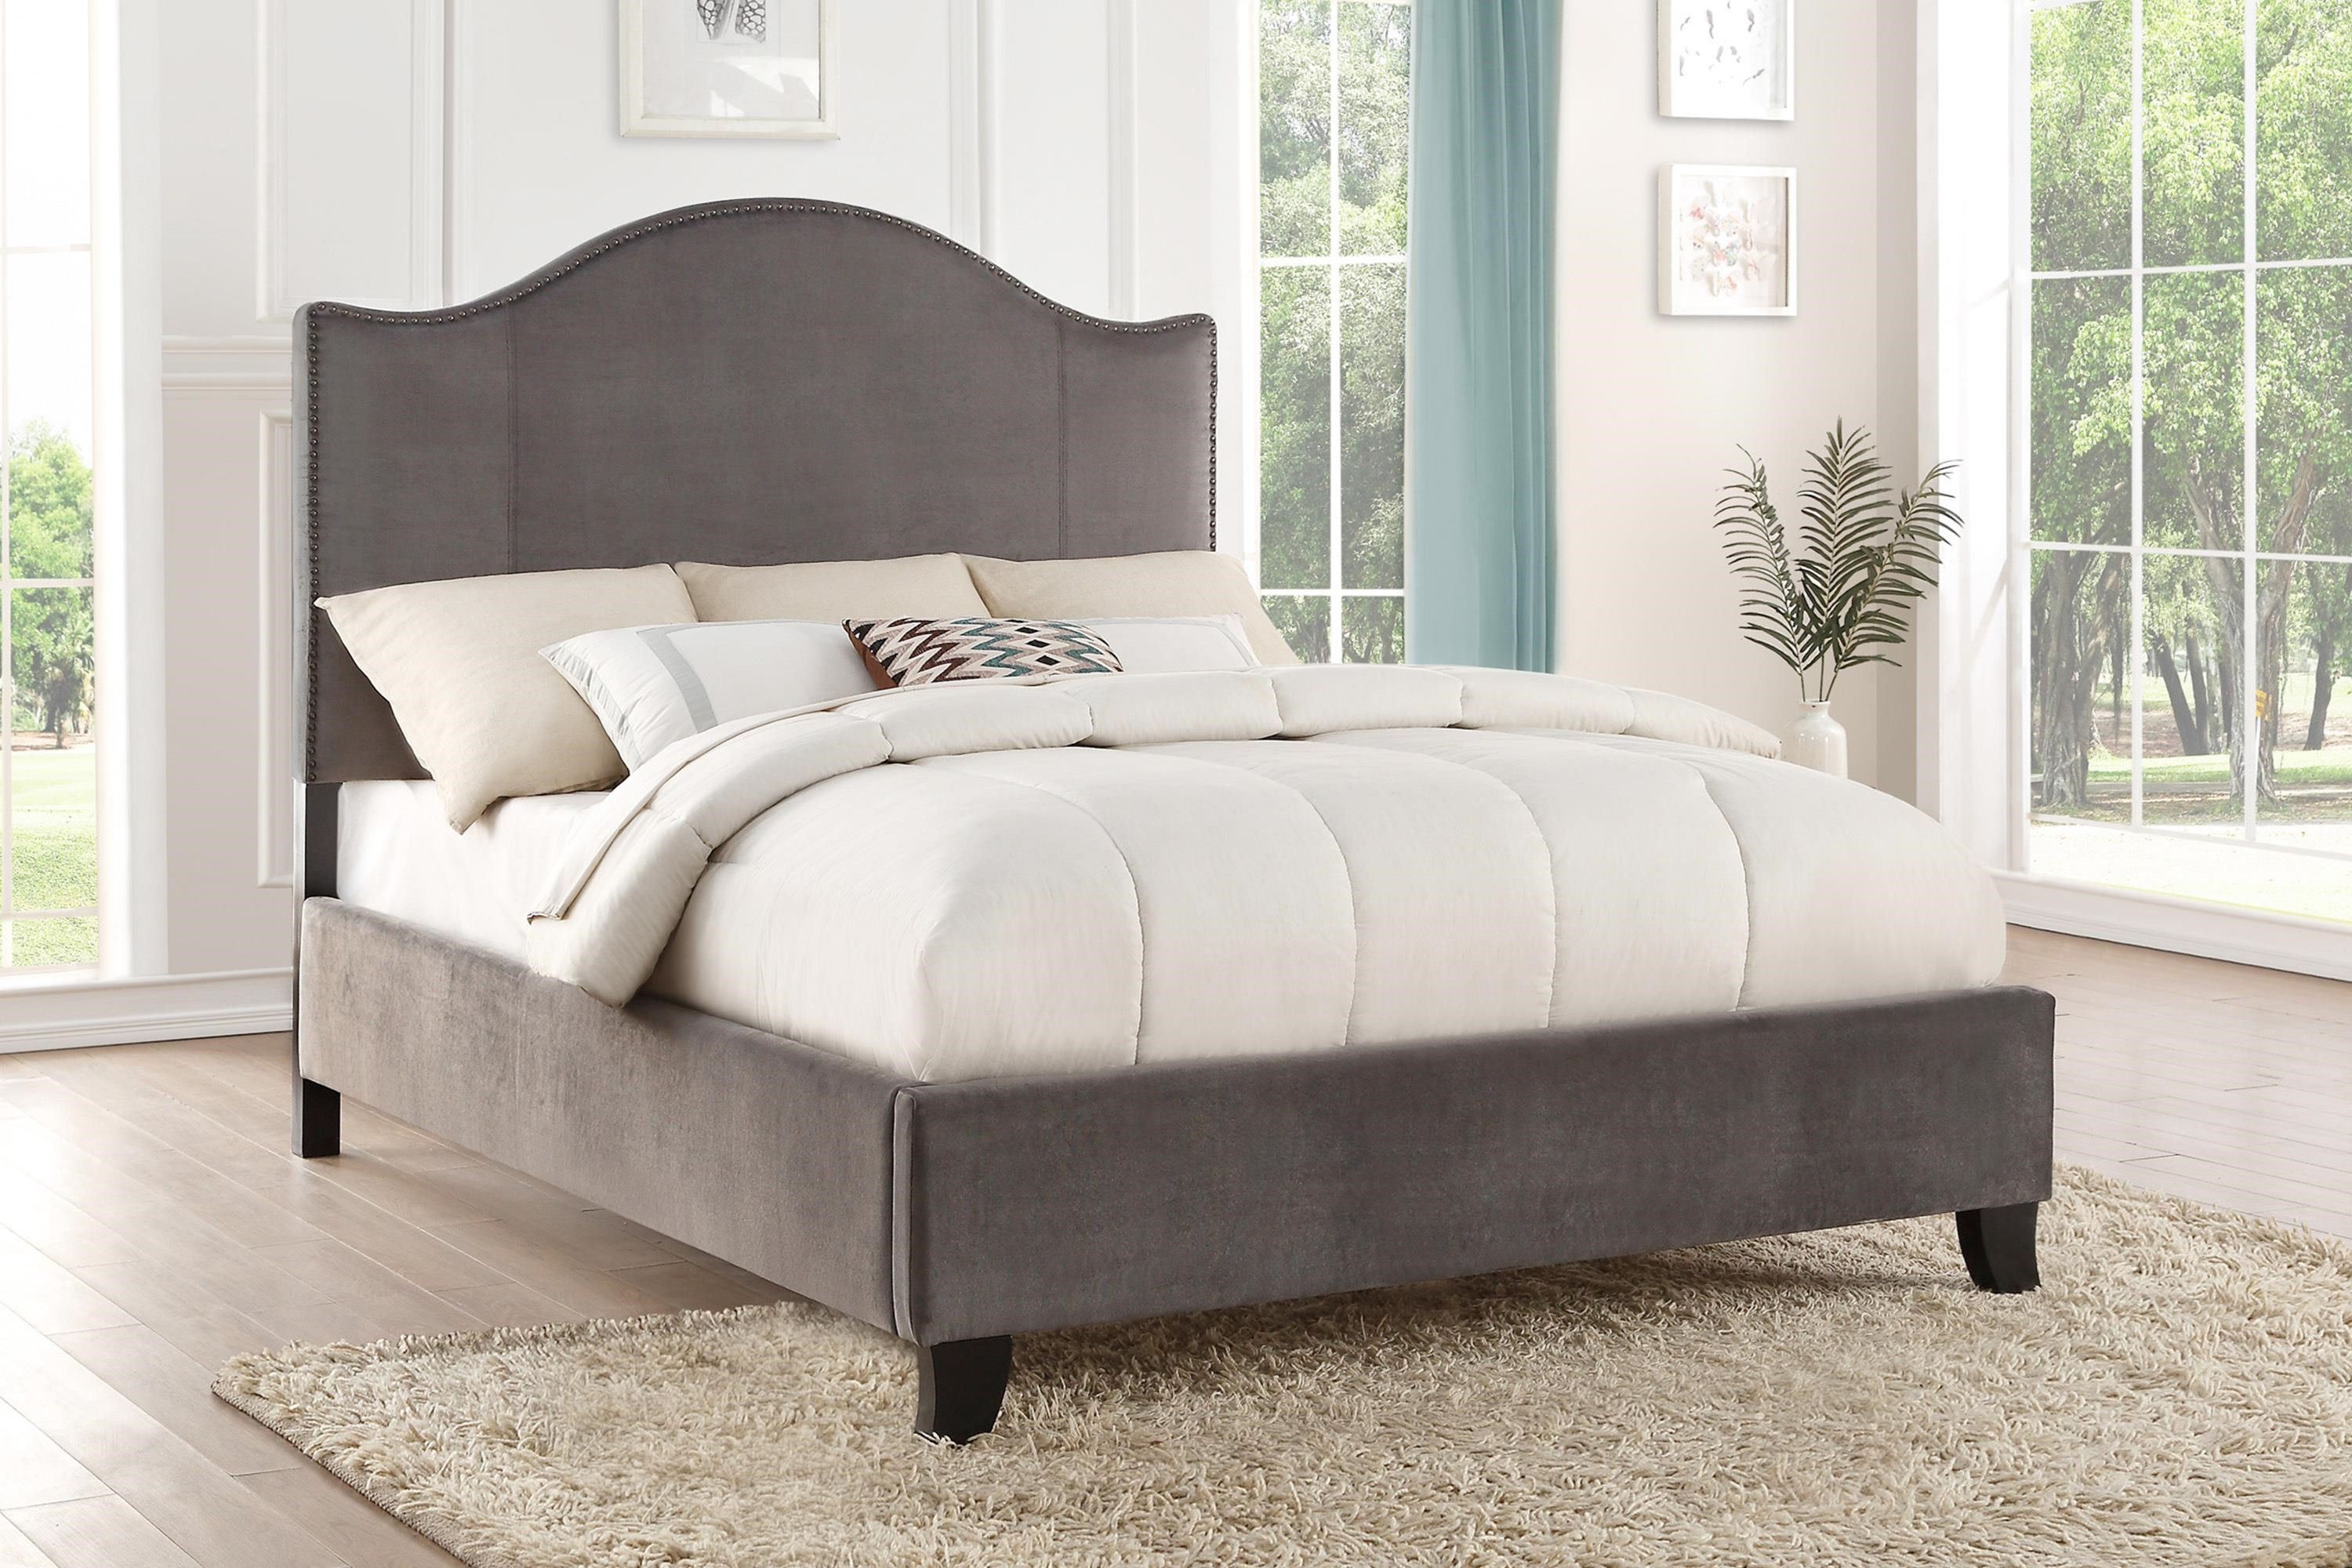 Carlow Cal King Upholstered Bed by Homelegance at Beck's Furniture